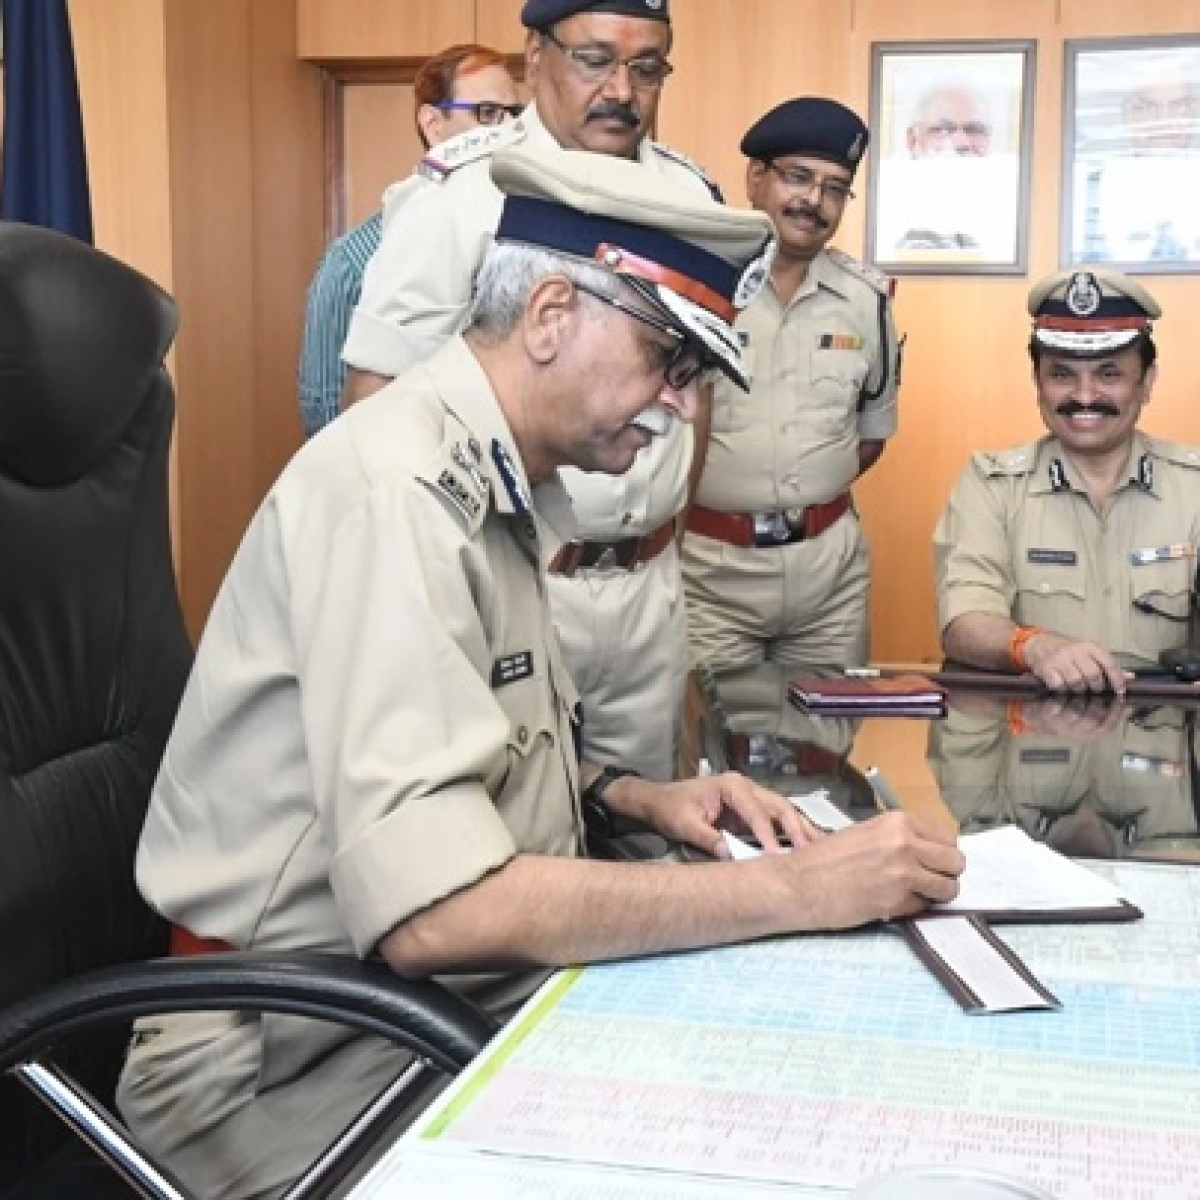 Bhopal: Cops on leave can join duty at native stations after leave, says DGP Vivek Johri